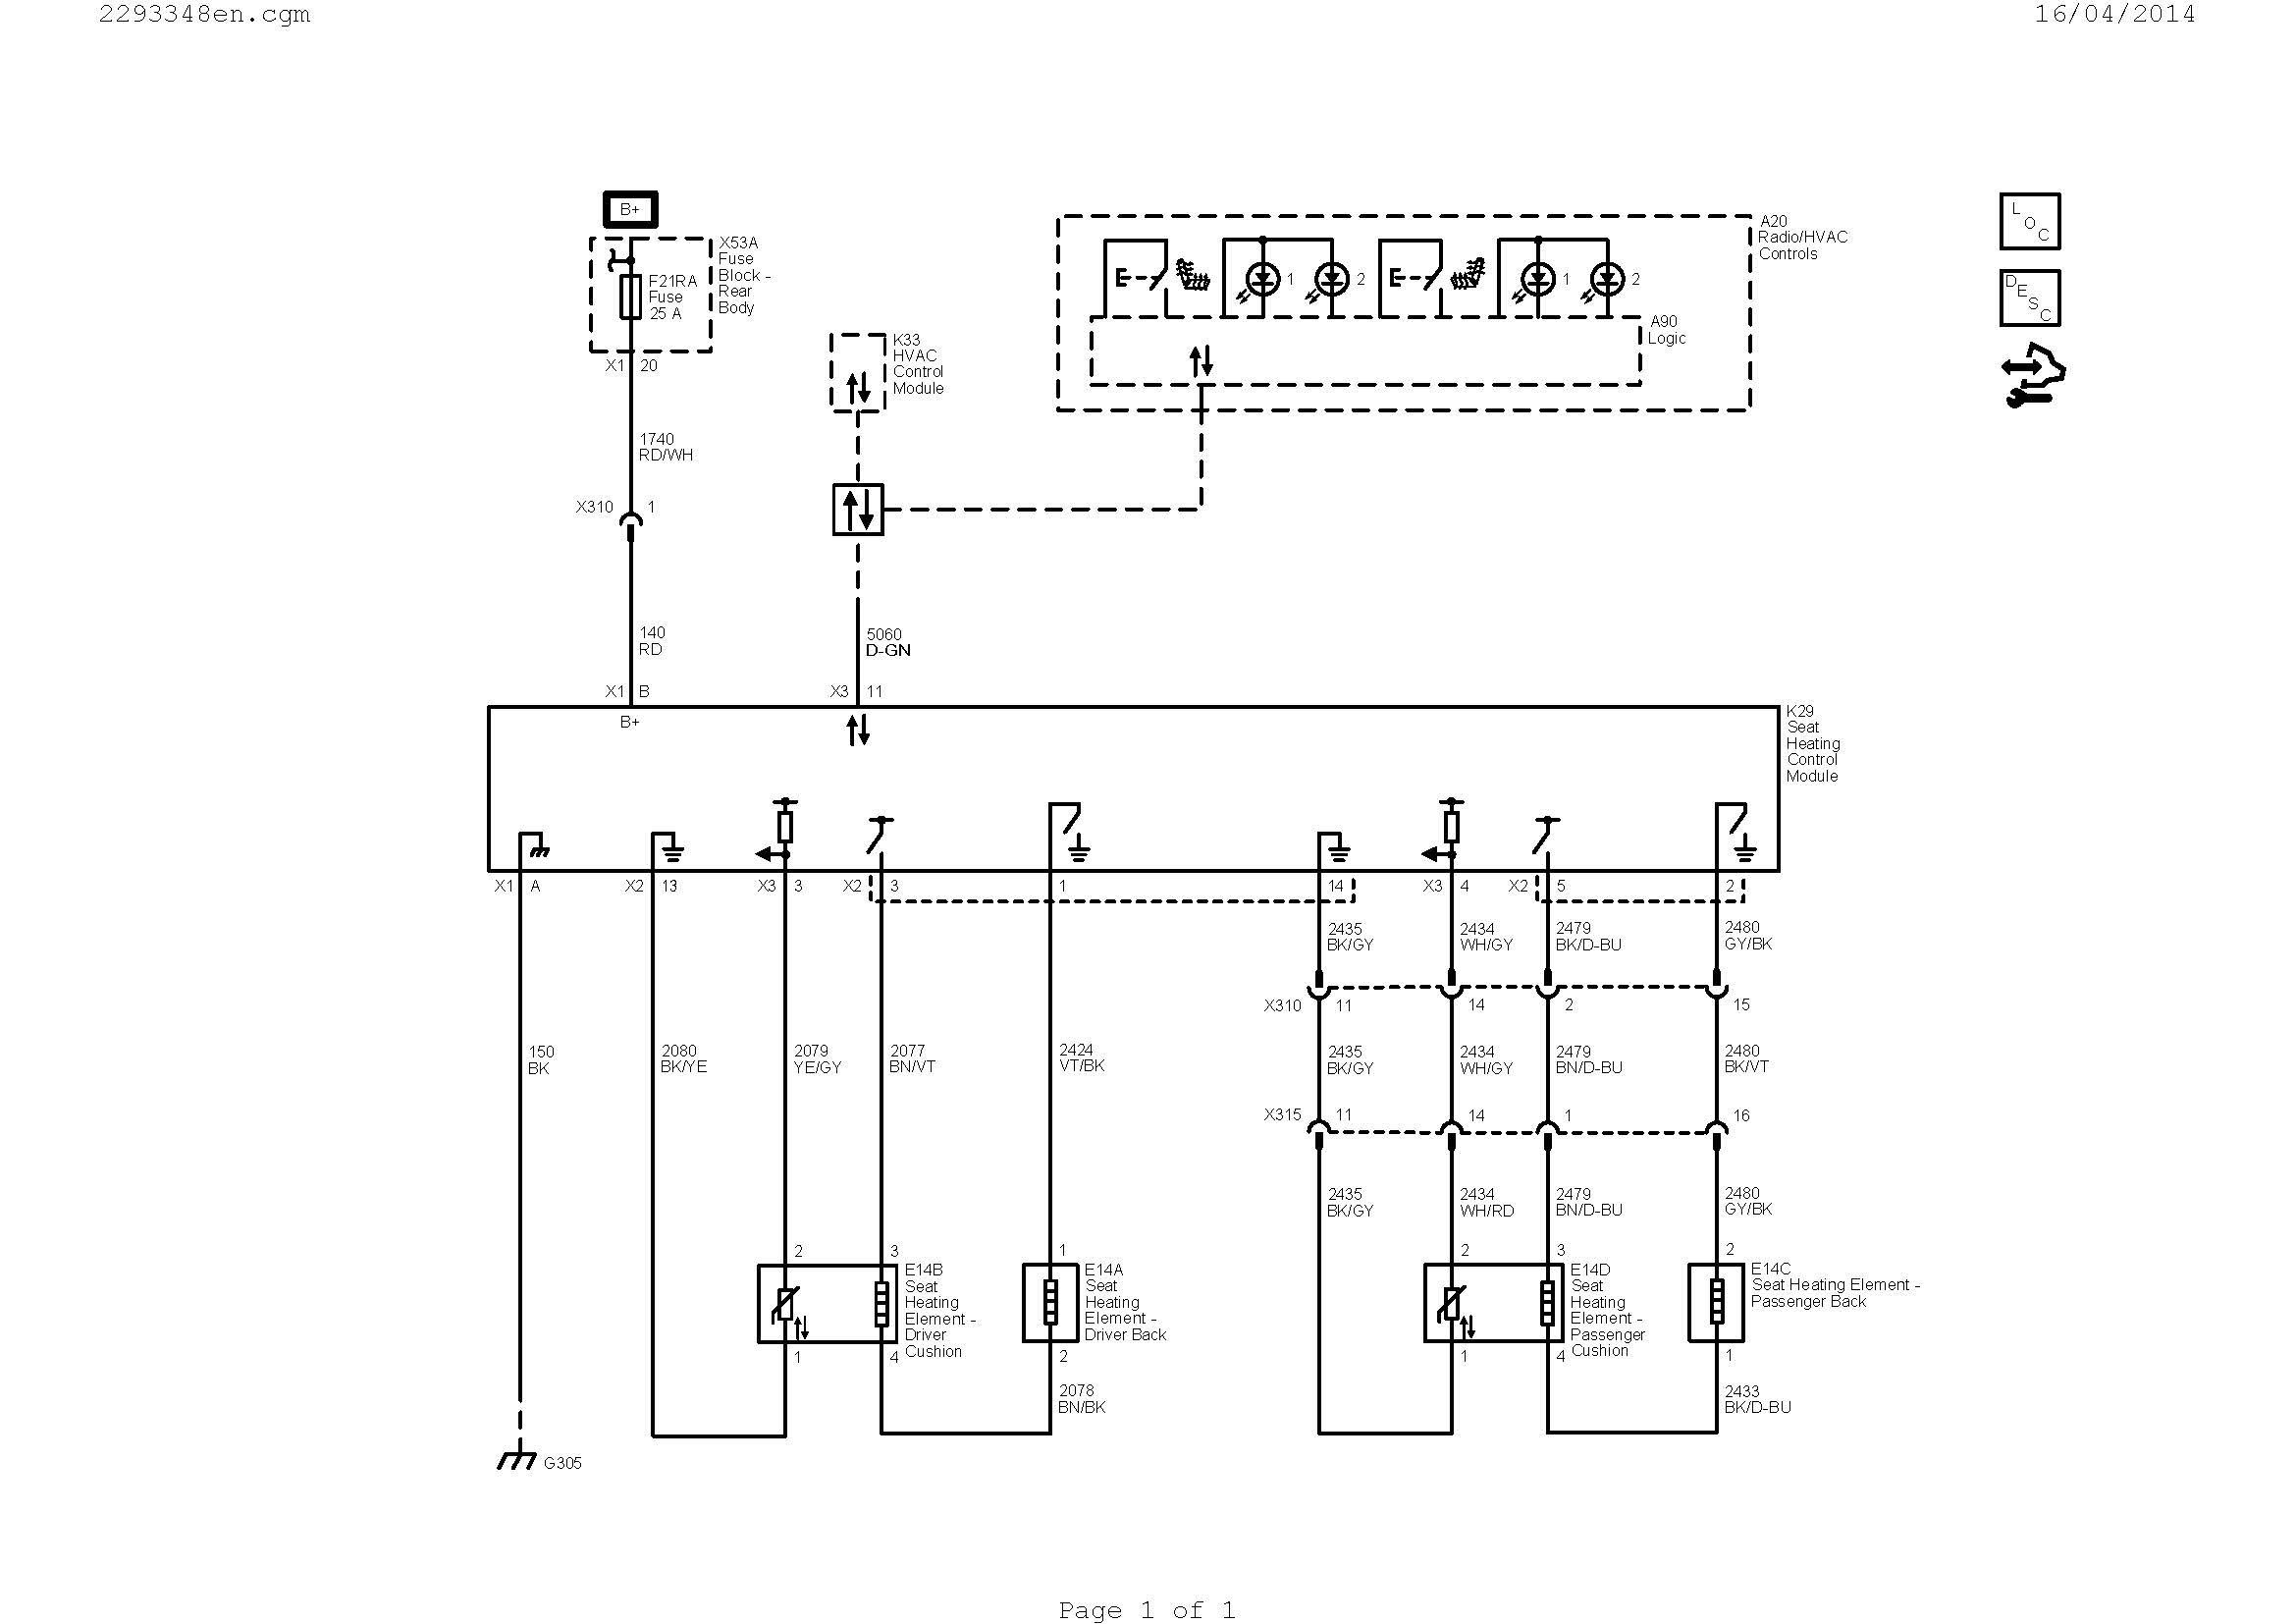 house thermostat wiring diagram Download-Nest Wireless thermostat Wiring Diagram Refrence Wiring Diagram Ac Valid Hvac Diagram Best Hvac Diagram 0d 14-q